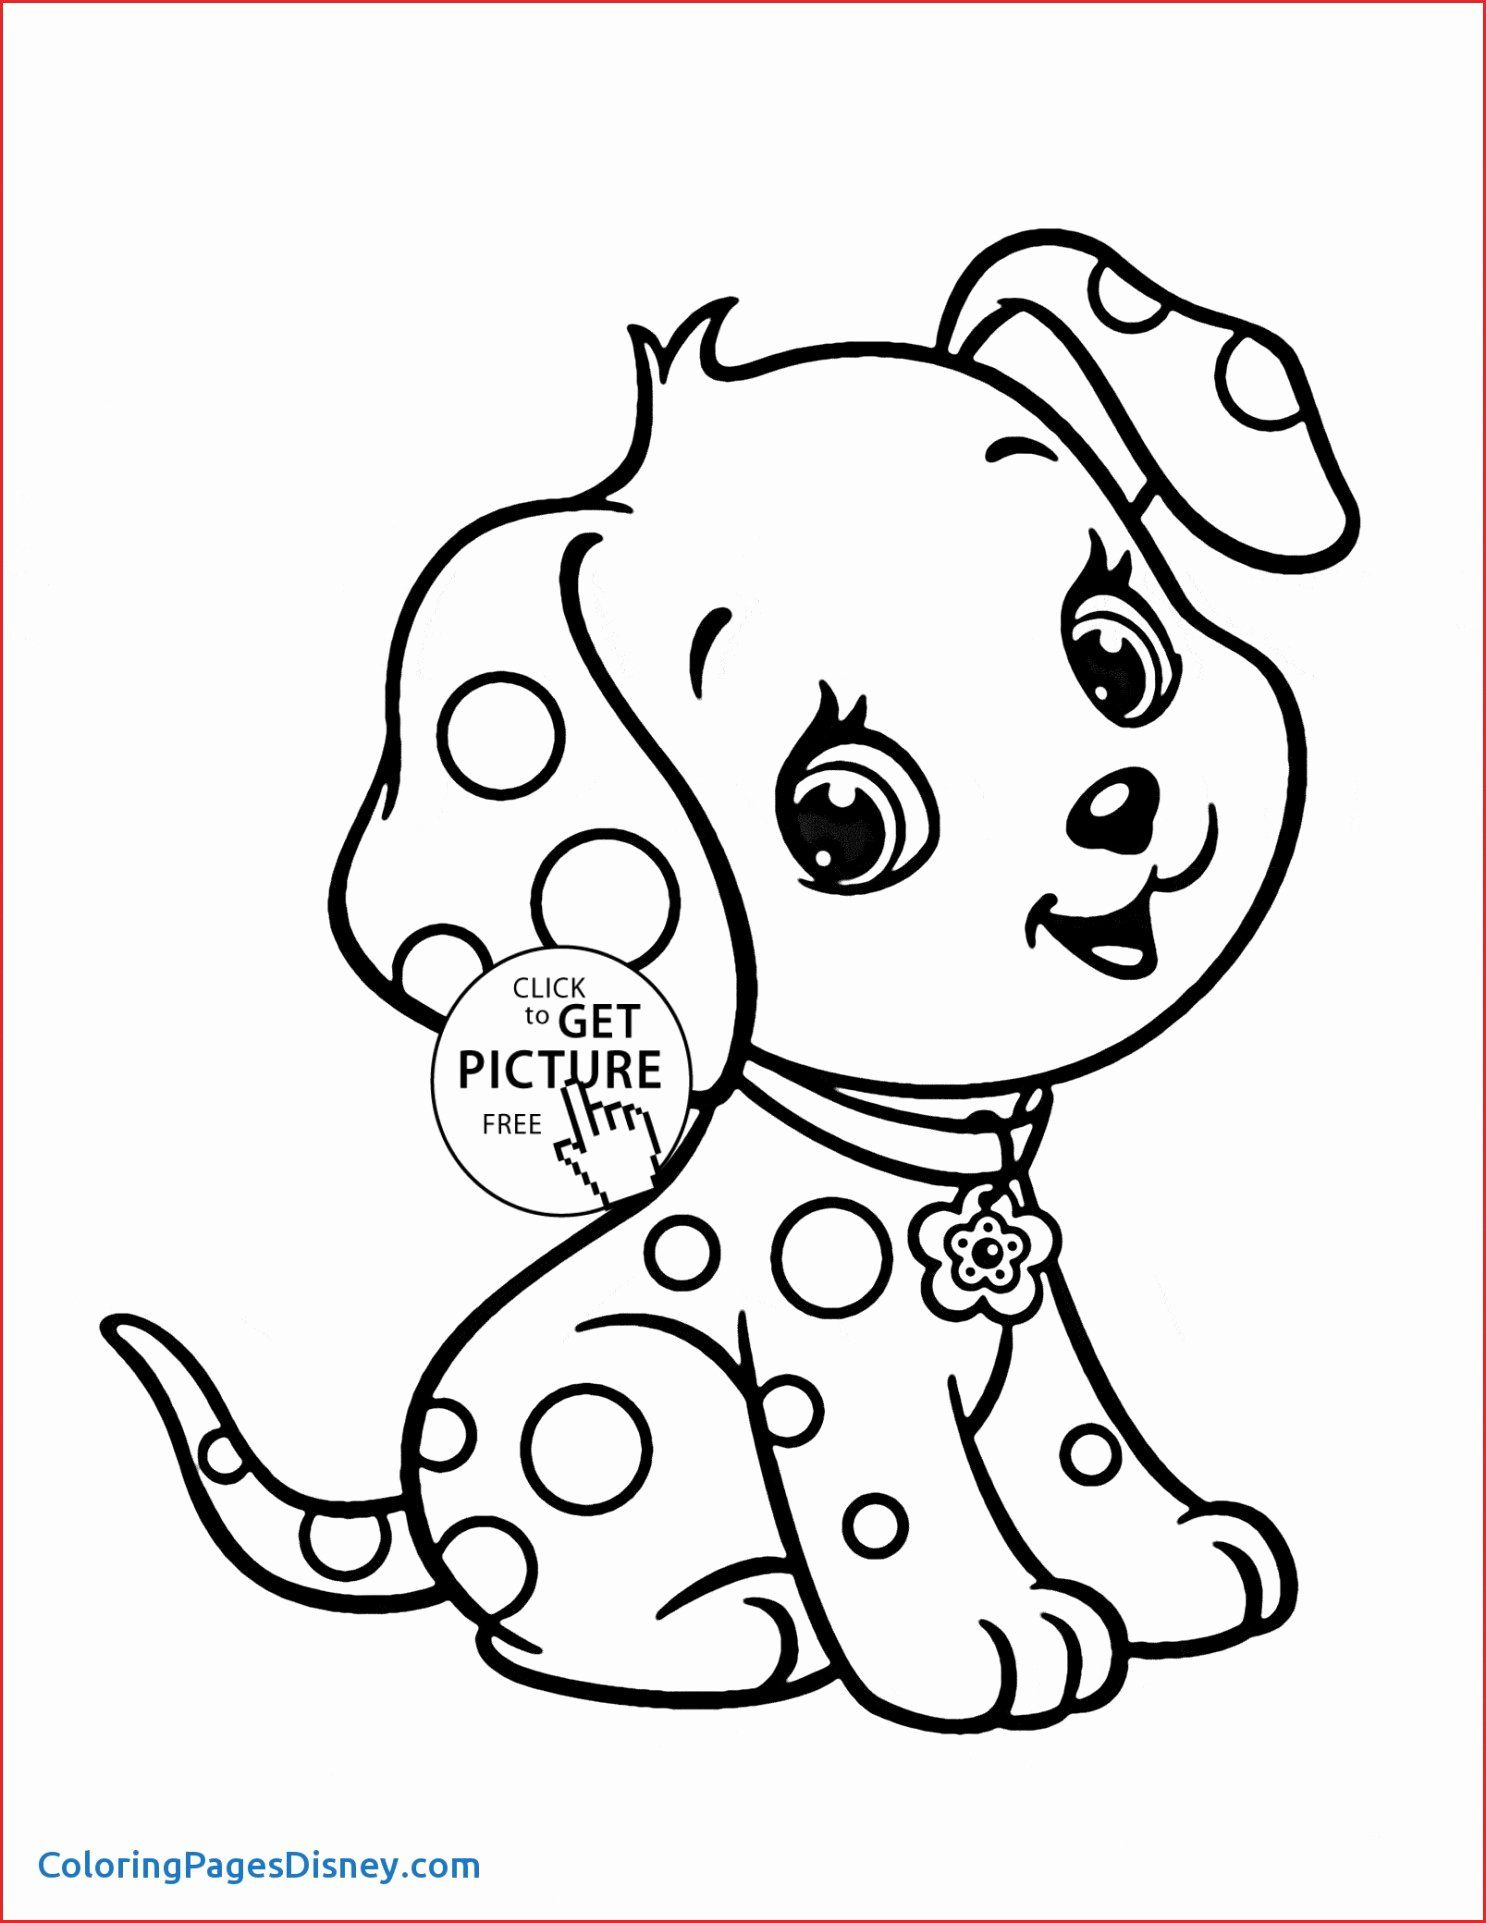 Minnie Mouse Drawing Book Elegant Easter Coloring Pages Printable 7783 Dog Coloring Book Page Unicorn Coloring Pages Puppy Coloring Pages Animal Coloring Pages